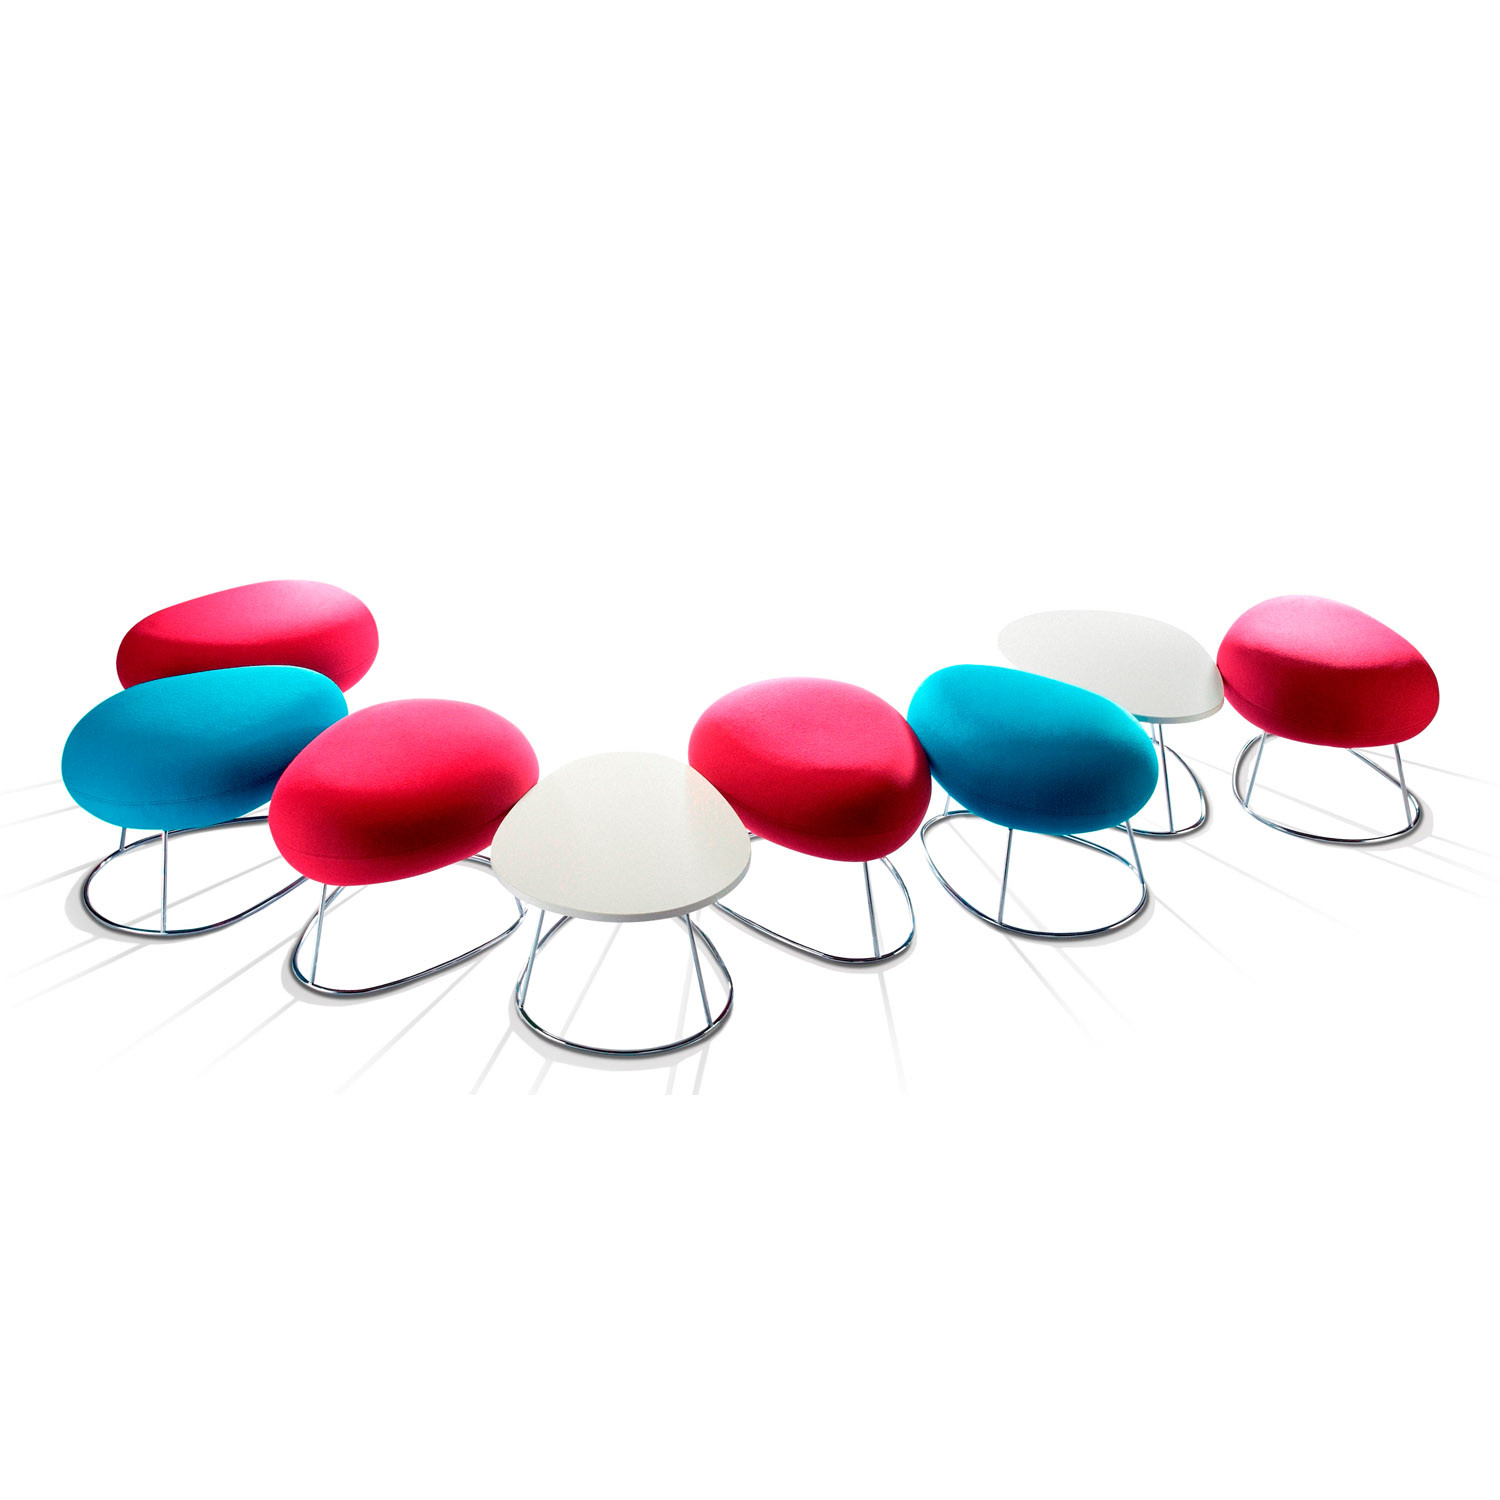 Bubbly Design Co: Designer Stools By David Fox